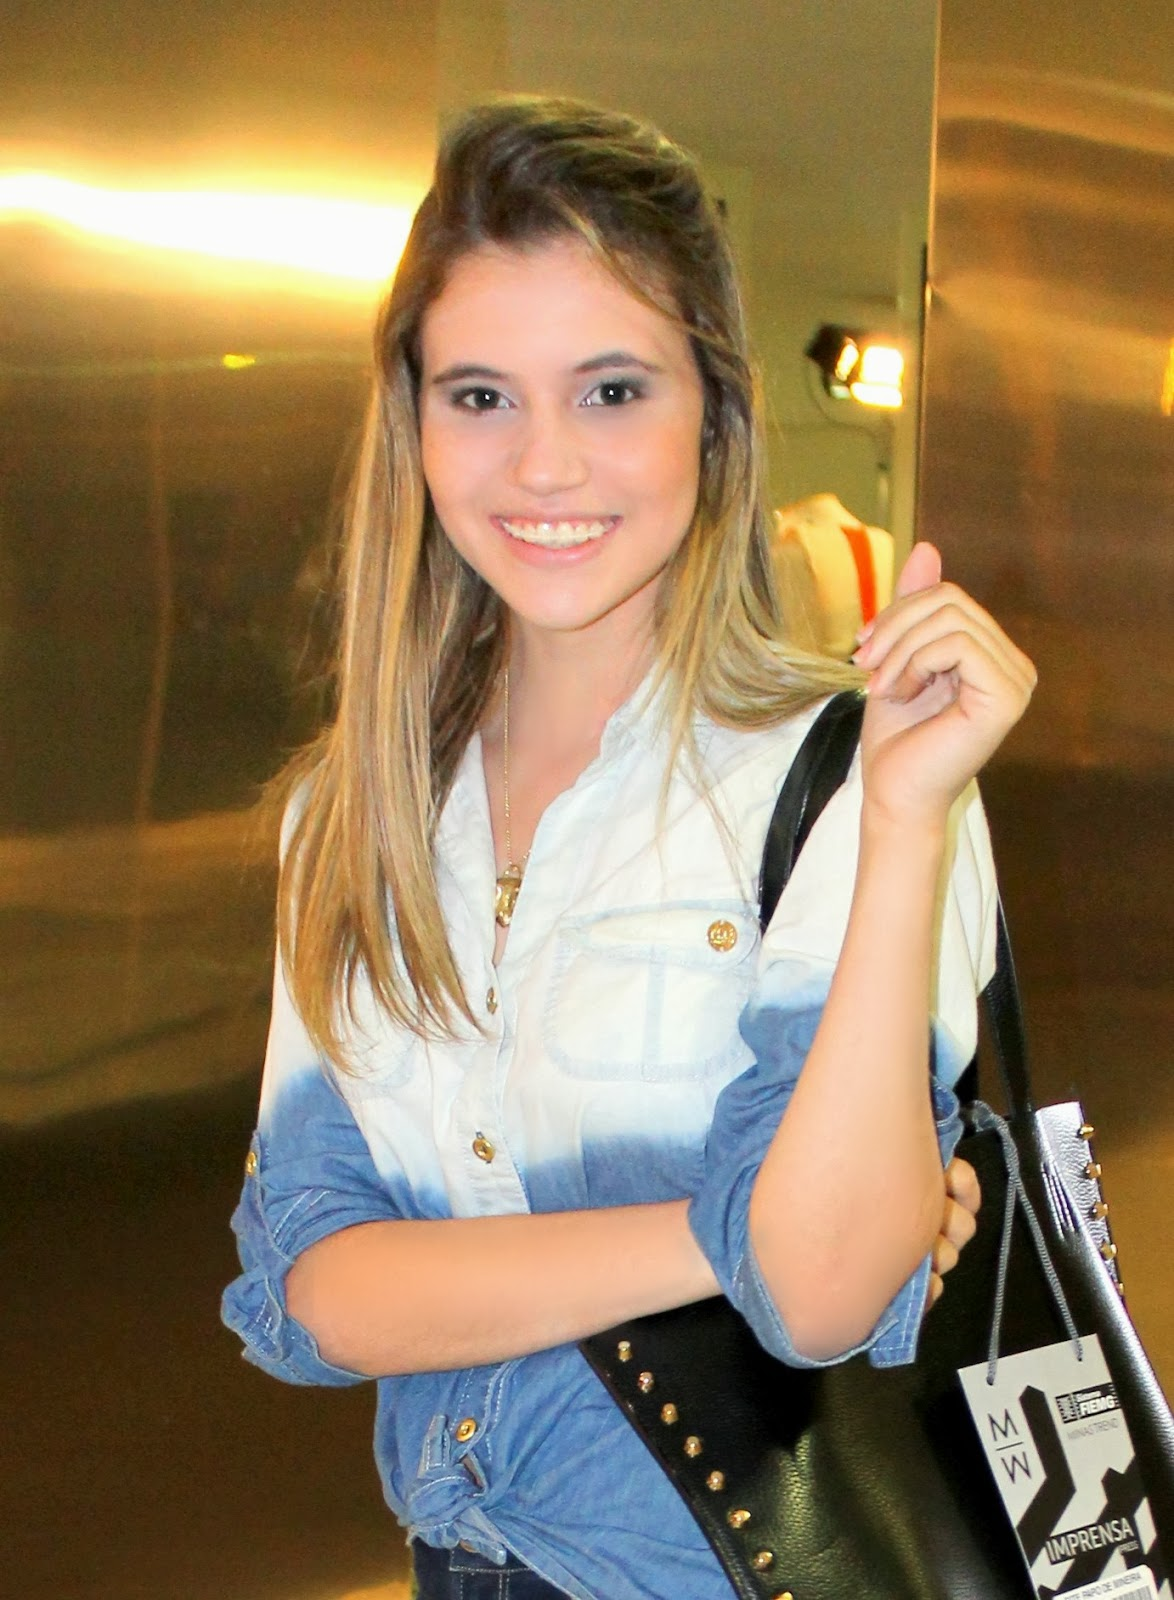 Look all jeans - Calça e Camisa Jeans